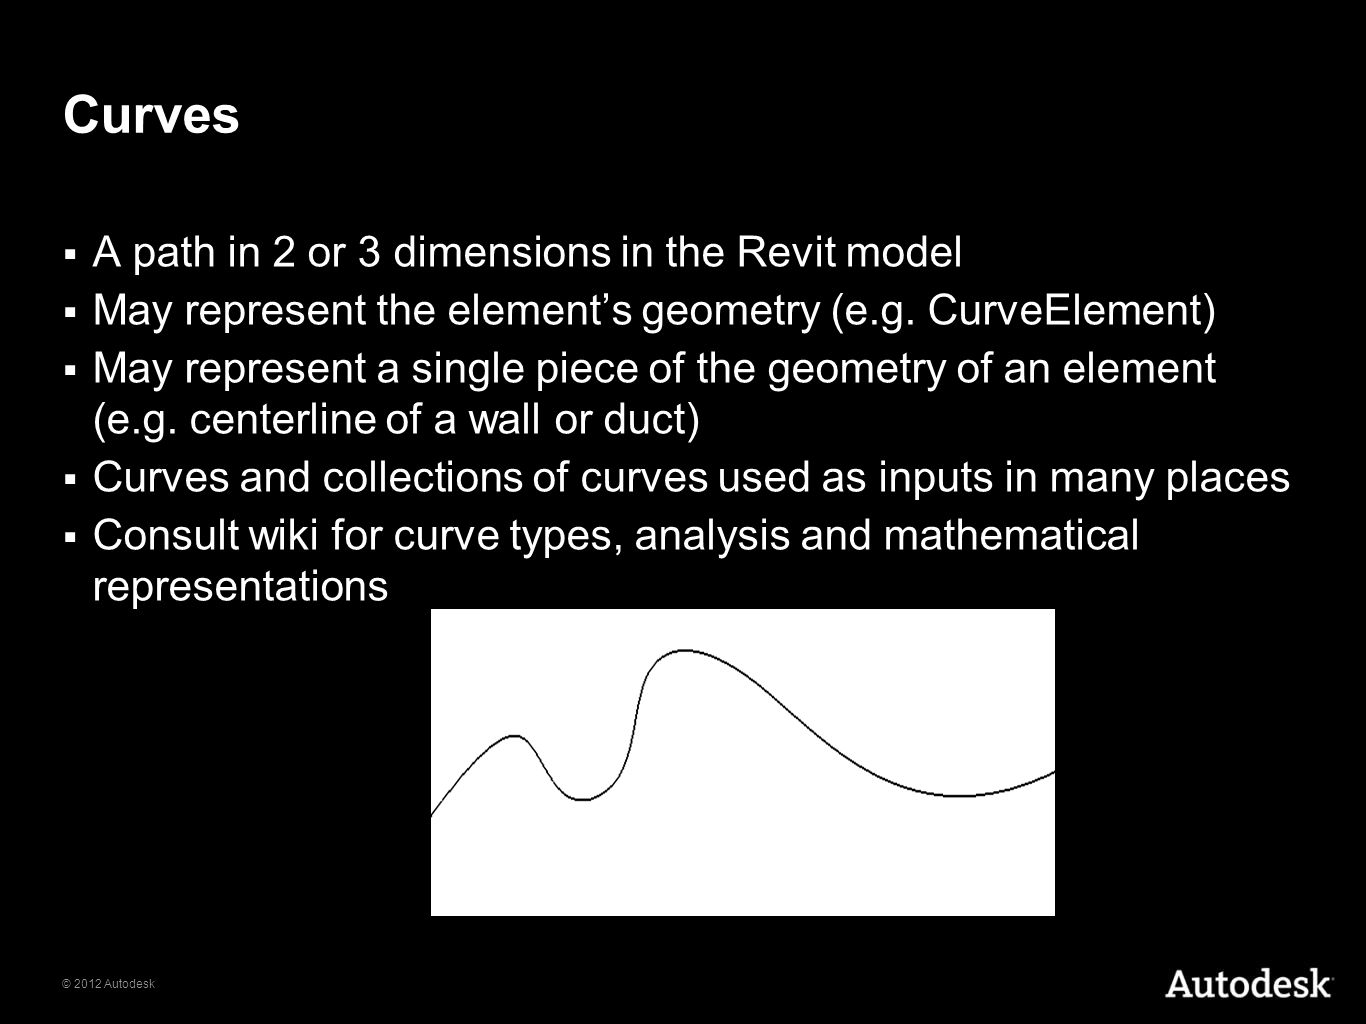 Curves A path in 2 or 3 dimensions in the Revit model